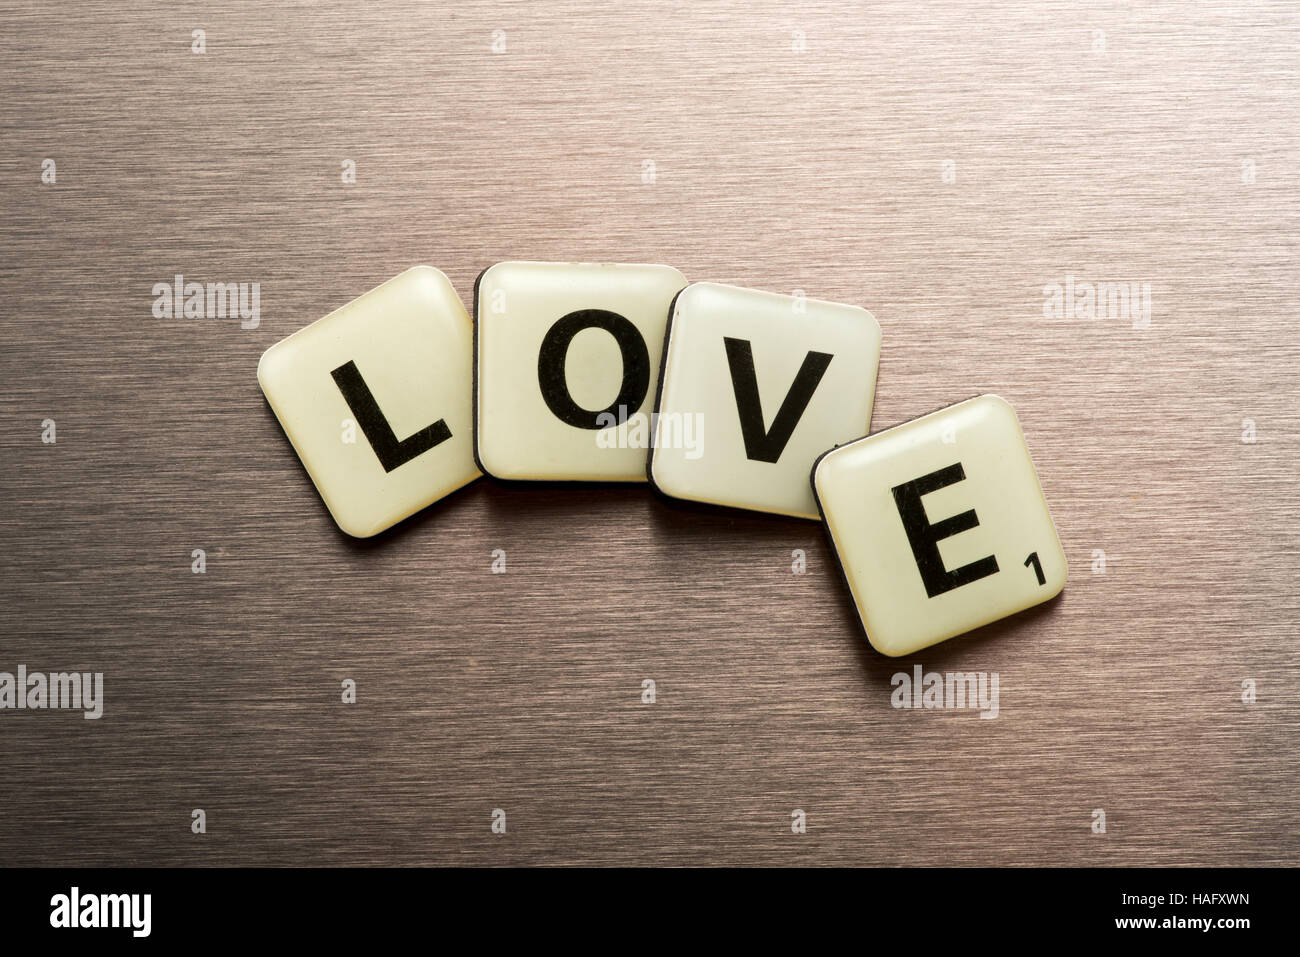 Word Love on letter blocks arranged in a curve on a textured metal surface with gradient lighting - Stock Image